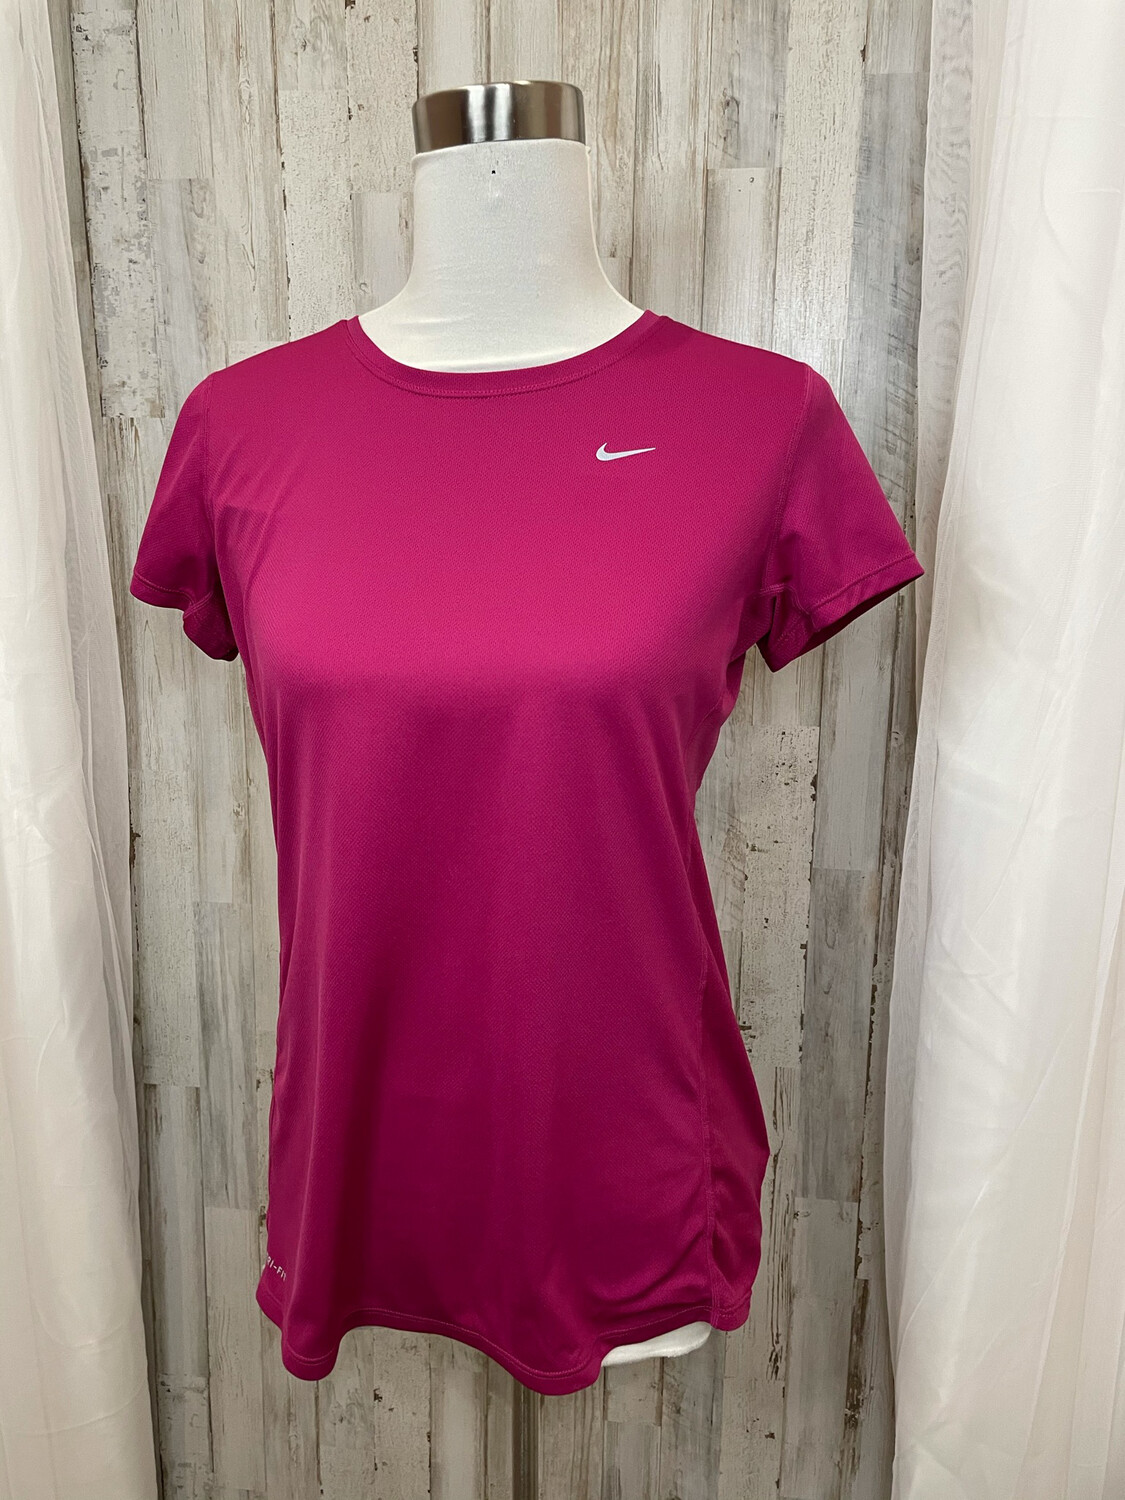 Nike Fuchsia Dri-Fit Athletic Top - L